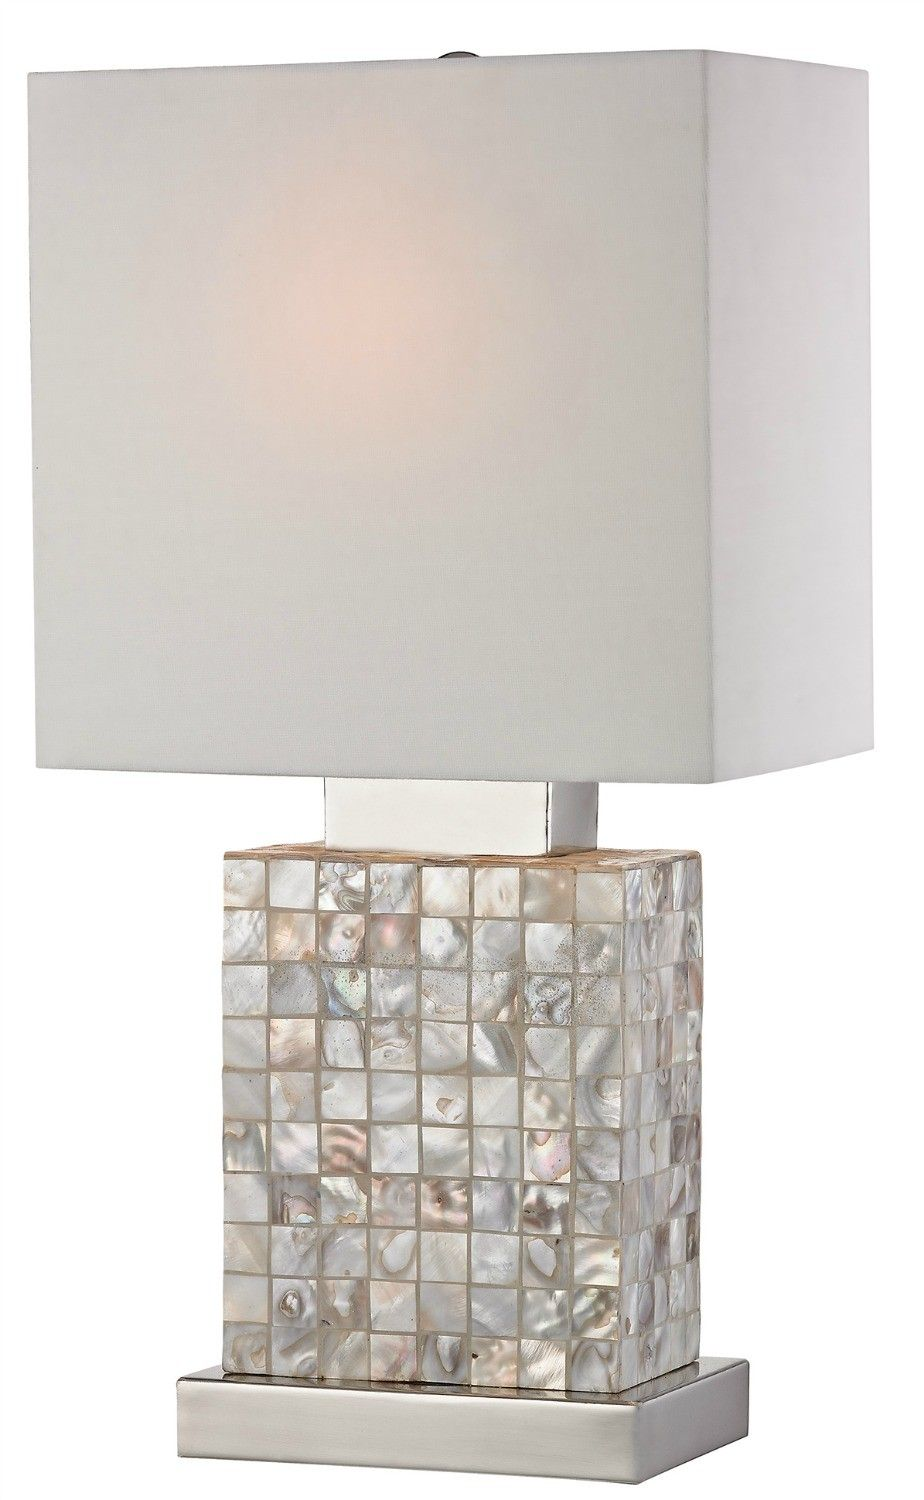 Maldives mother of pearl table lamp small lamps island style maldives mother of pearl table lamp small aloadofball Images